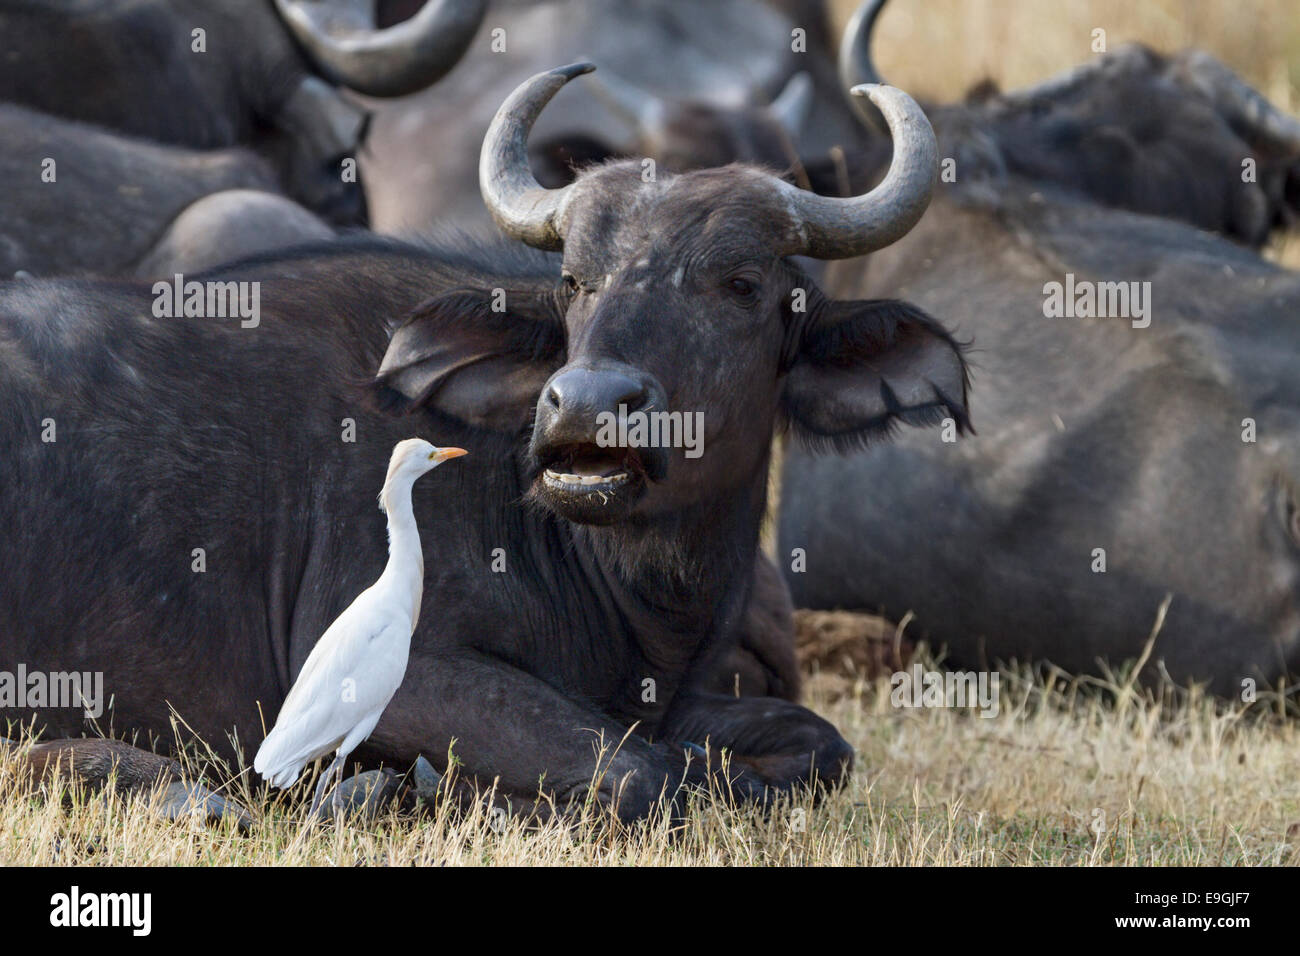 Cattle egret (Bubulcus ibis) inspects the mouth of a Cape buffalo (Syncerus caffer) - Stock Image